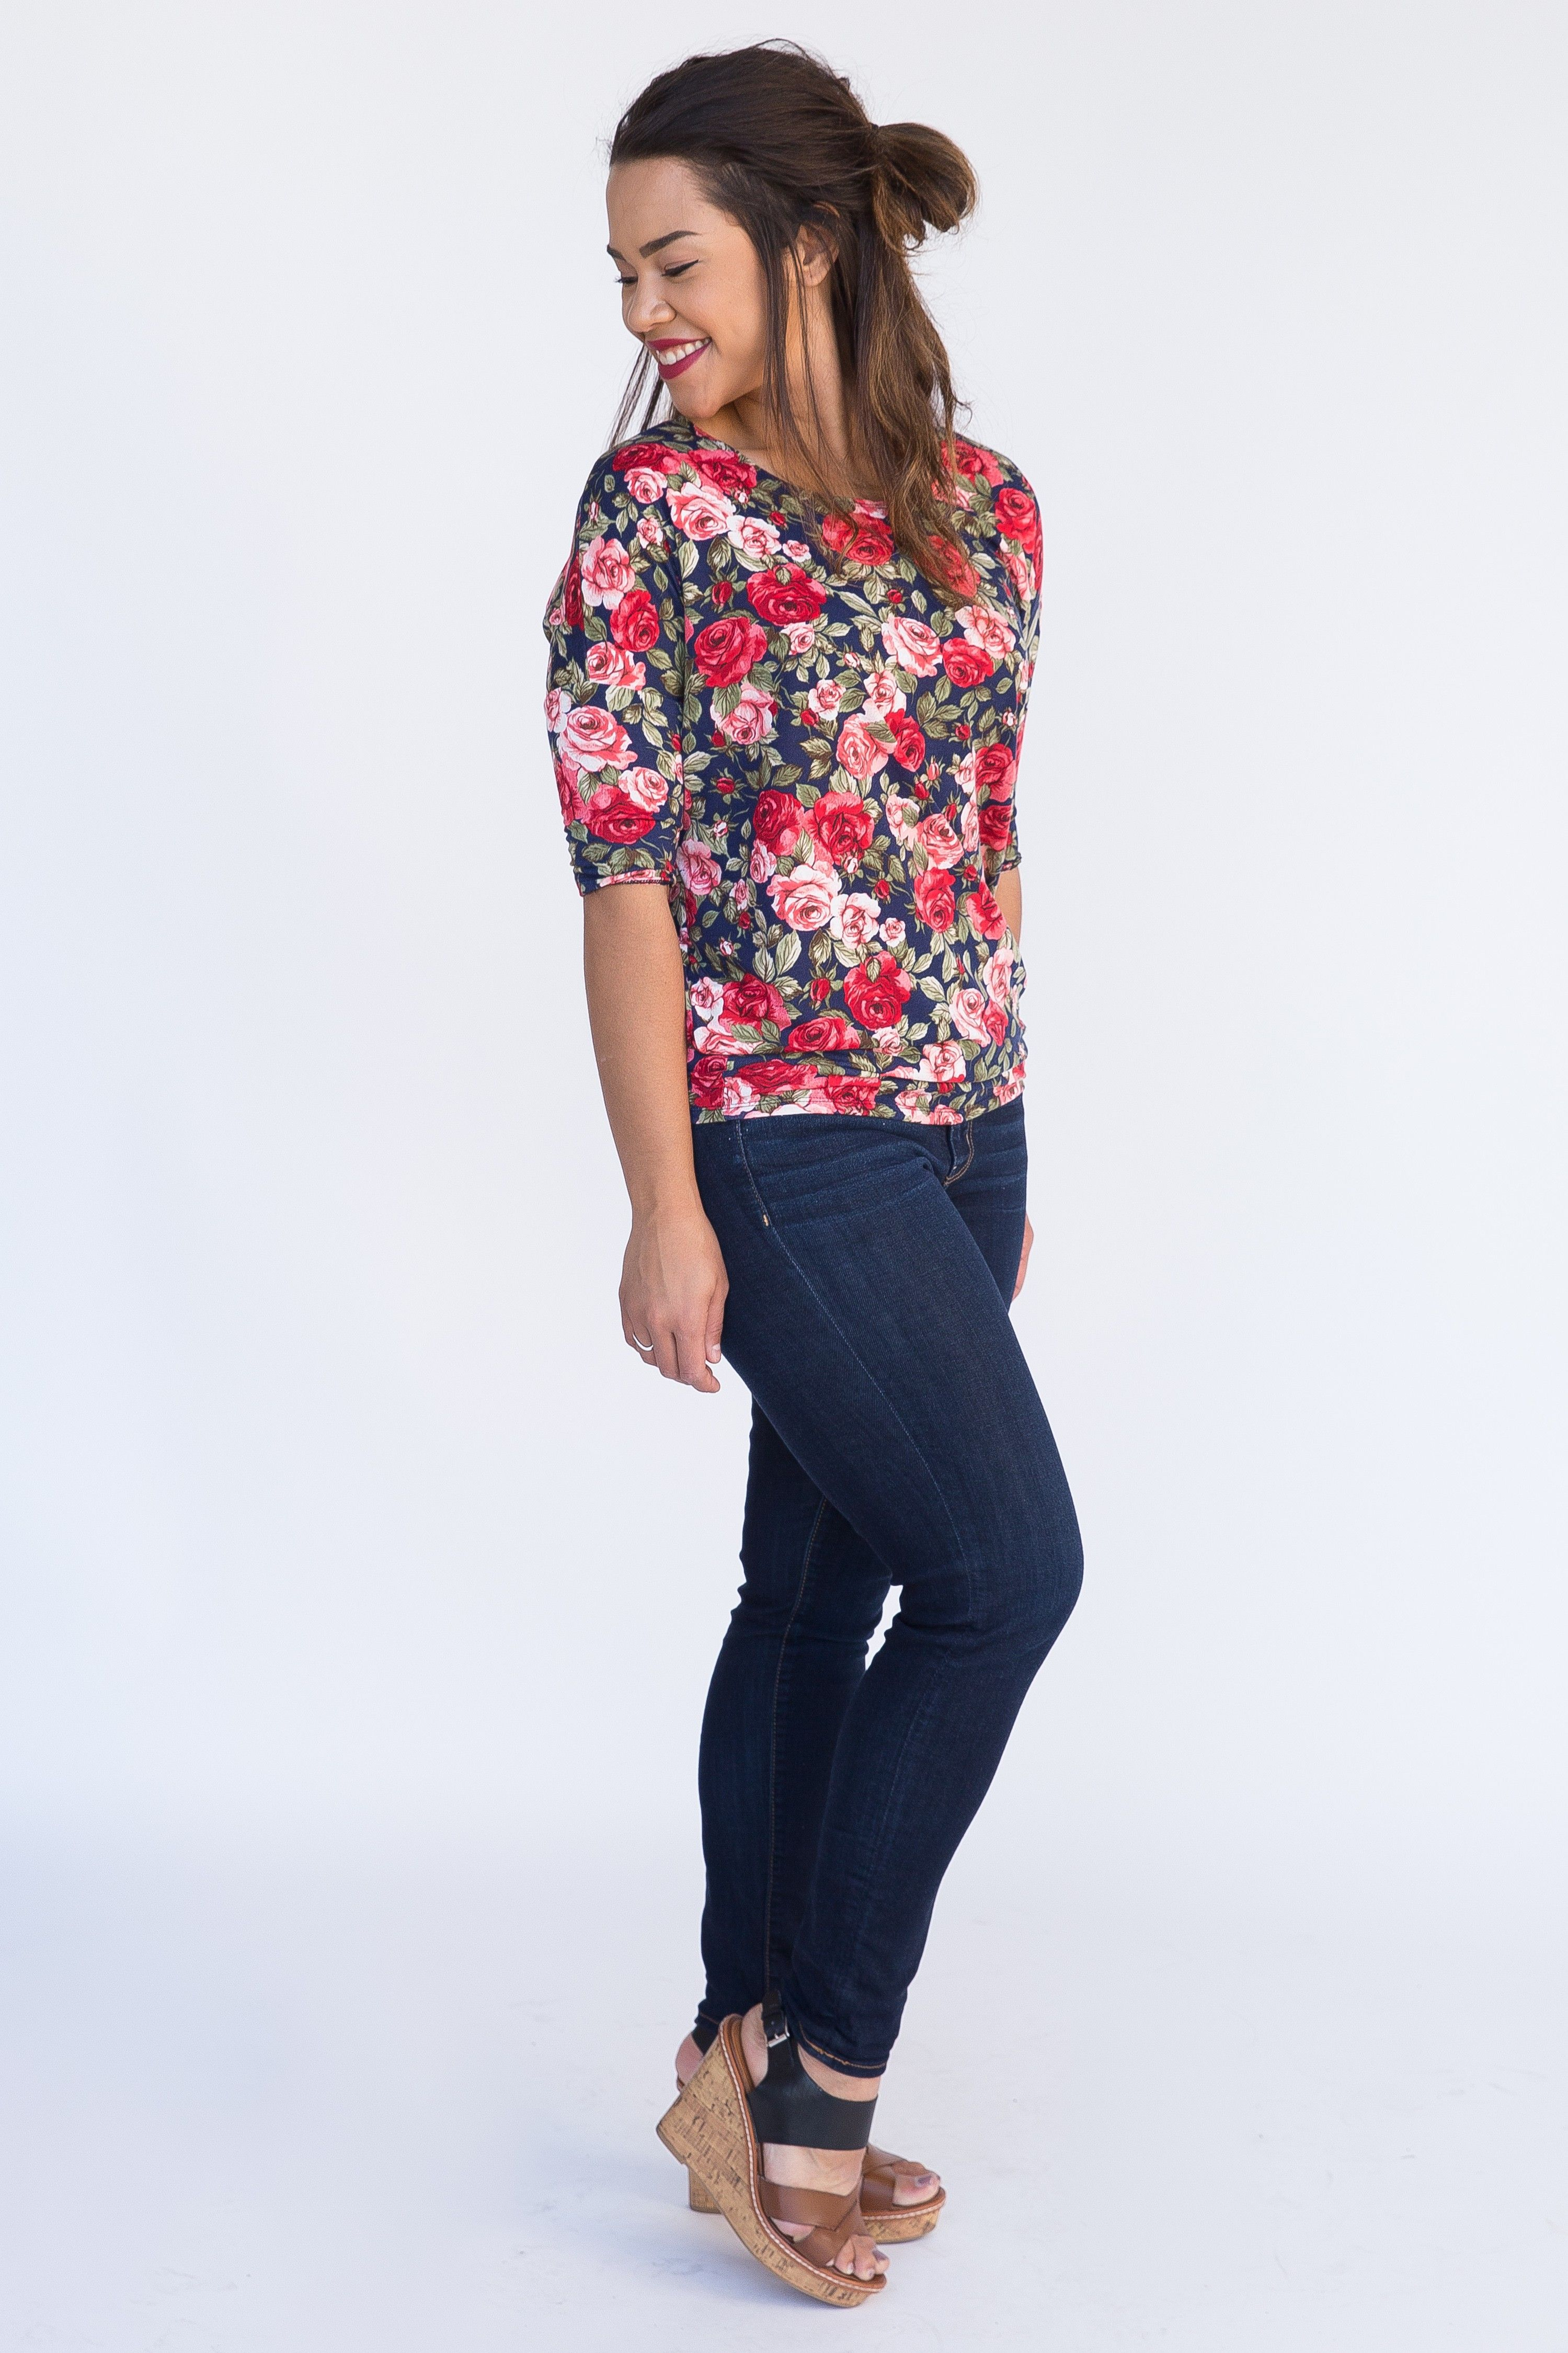 Soft and stretchy top featuring a dolman 3/4 sleeve fitted waist for versatile wear.